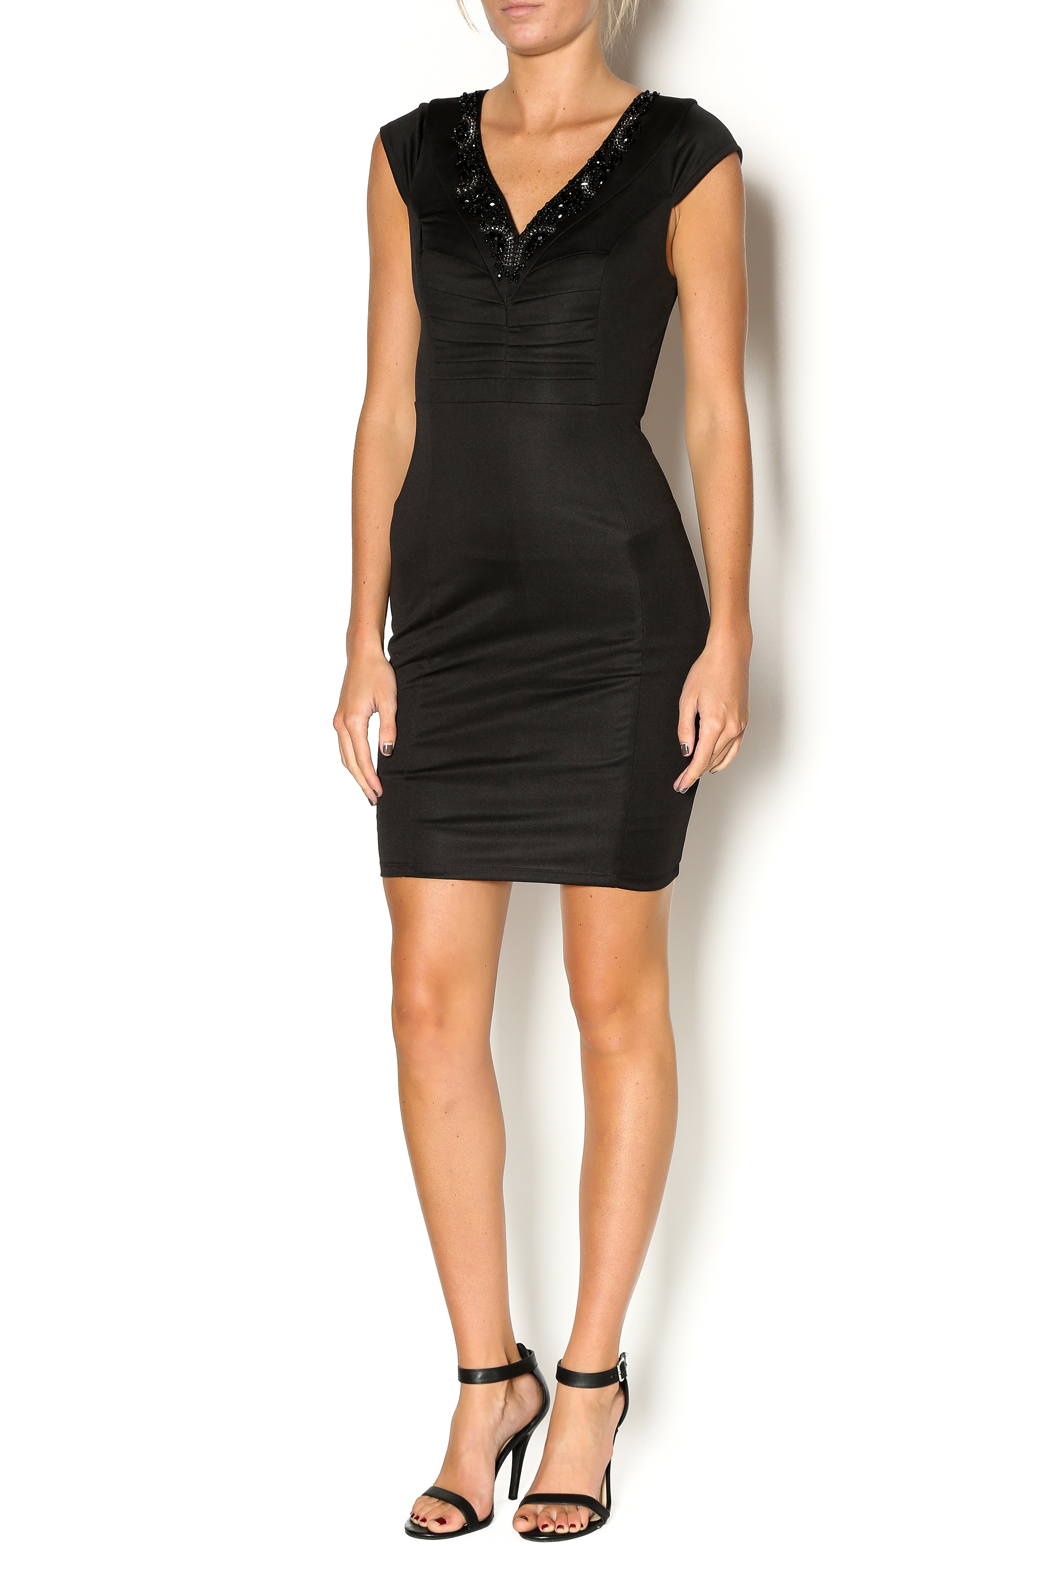 Abby & Taylor Sweetheart Neckline Dress - Front Full Image